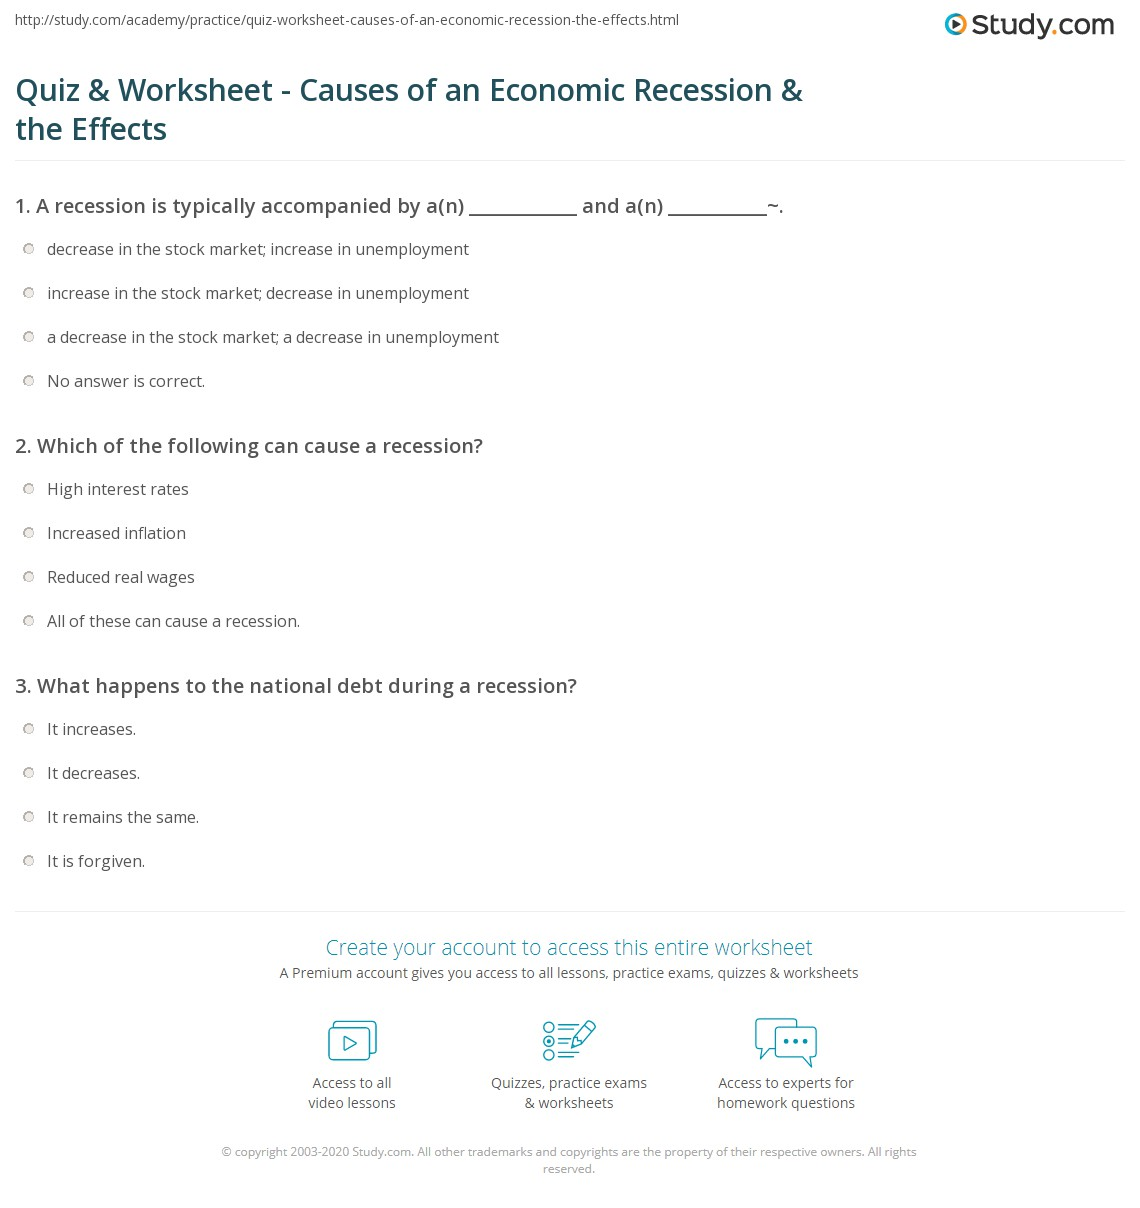 What are the causes of this economic recession?